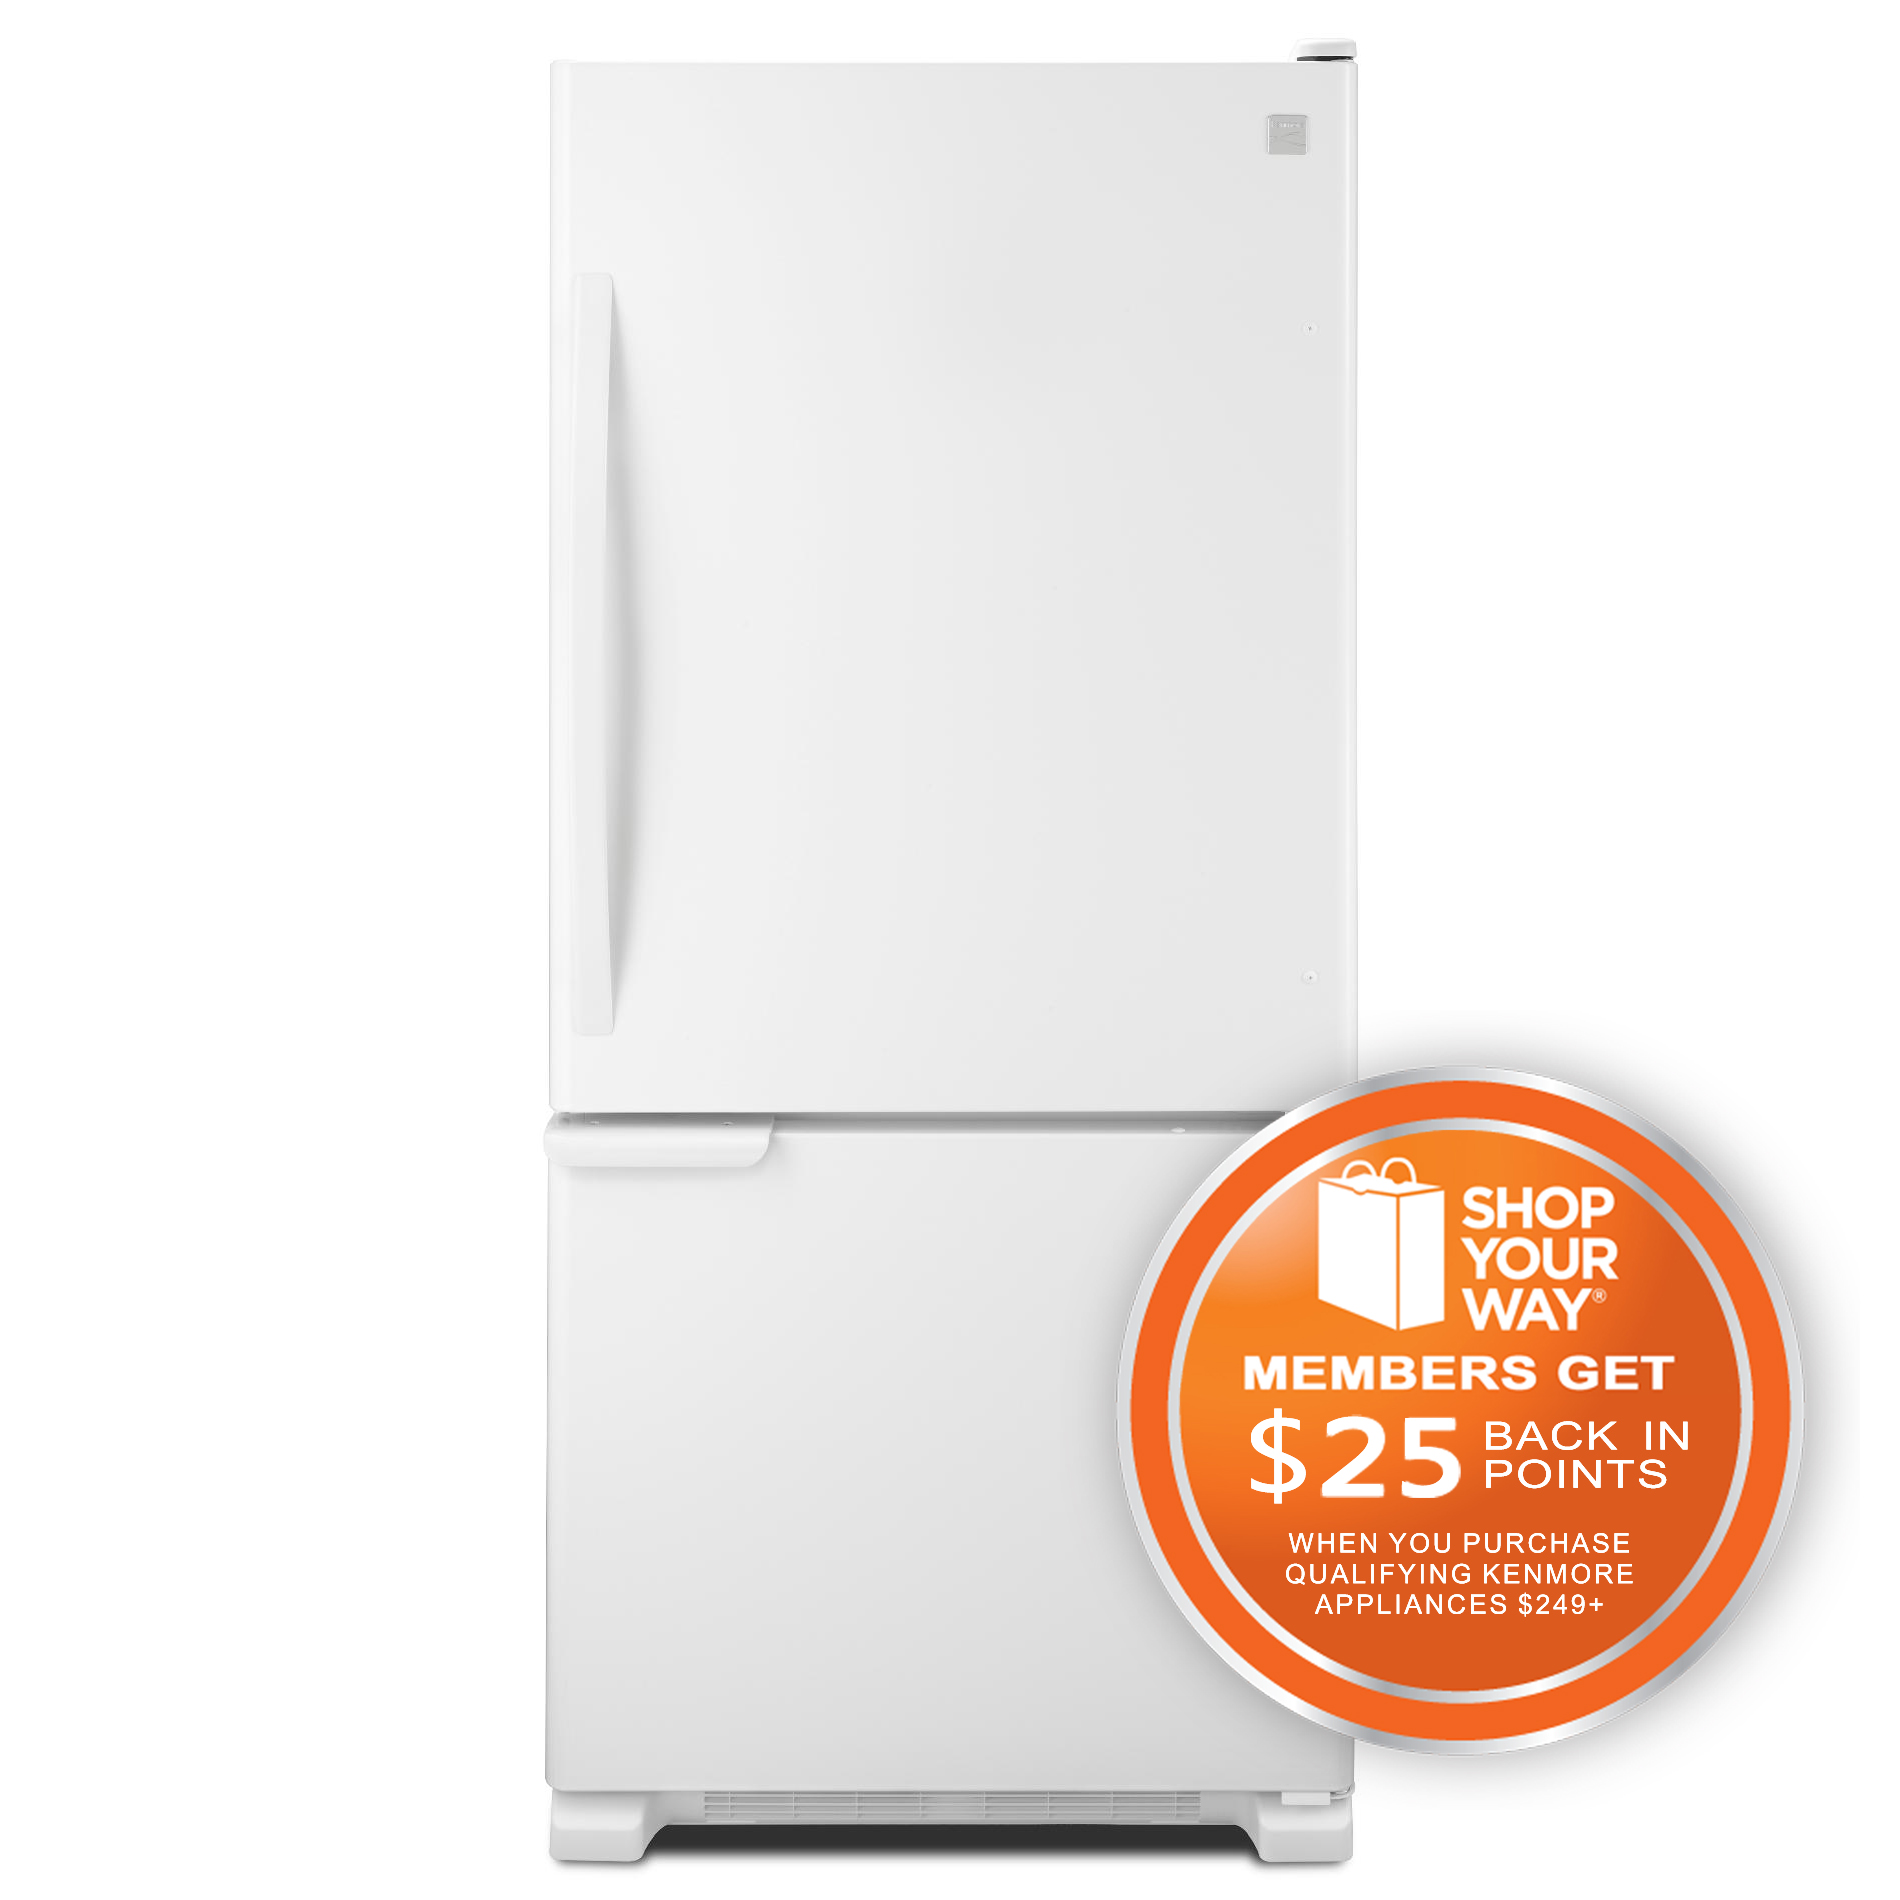 69312-19-cu-ft-Bottom-Freezer-Refrigerator-White